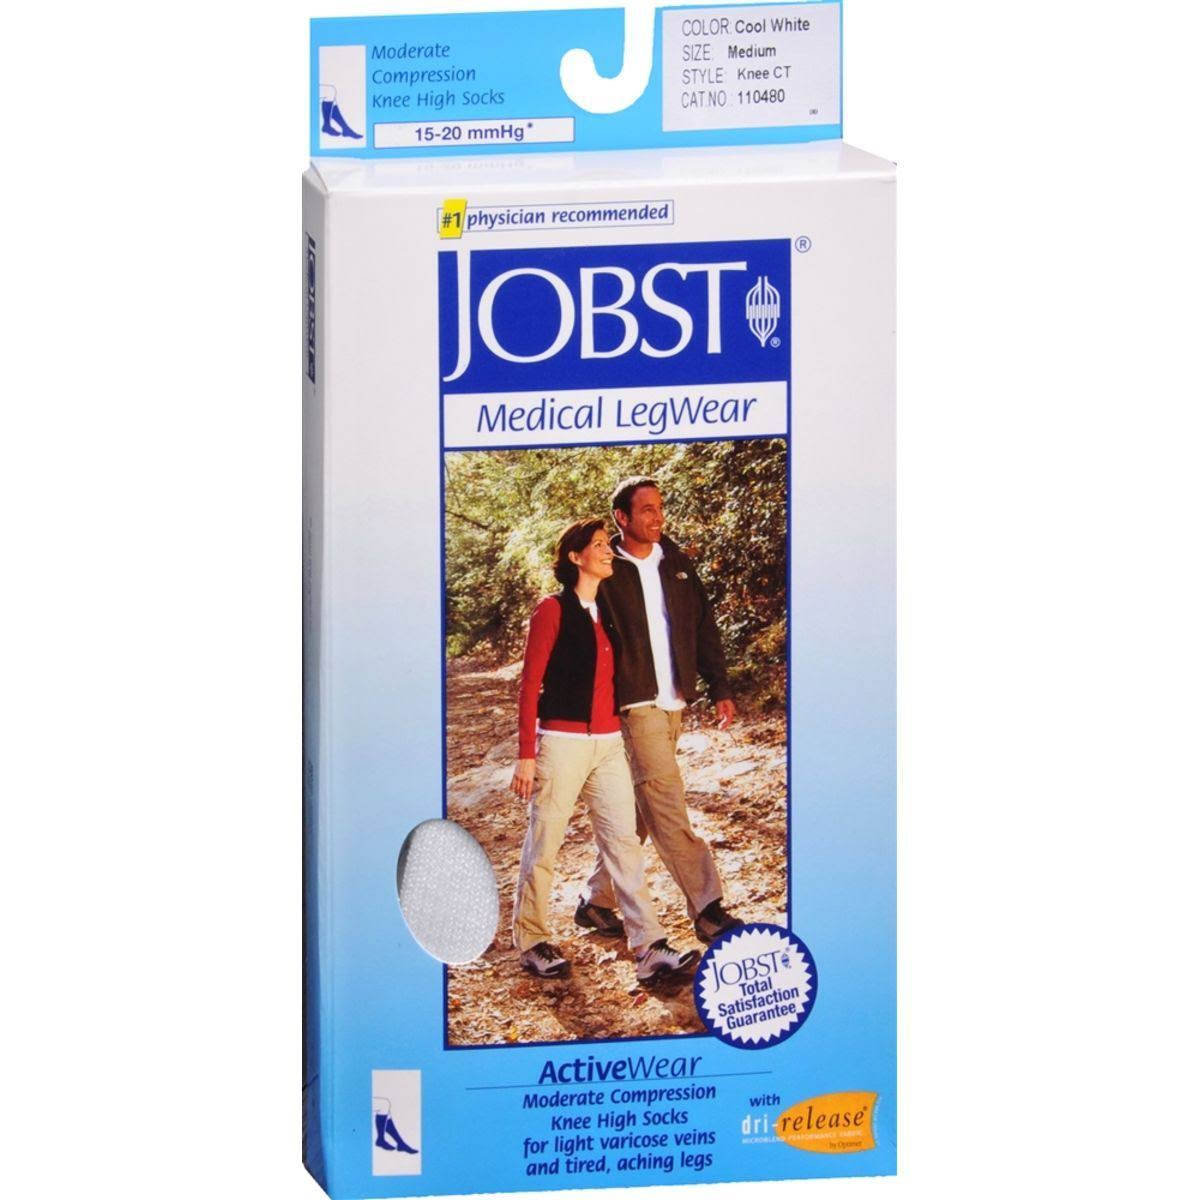 Jobst Medical Legwear Activewear Knee High Socks - Cool White. Large